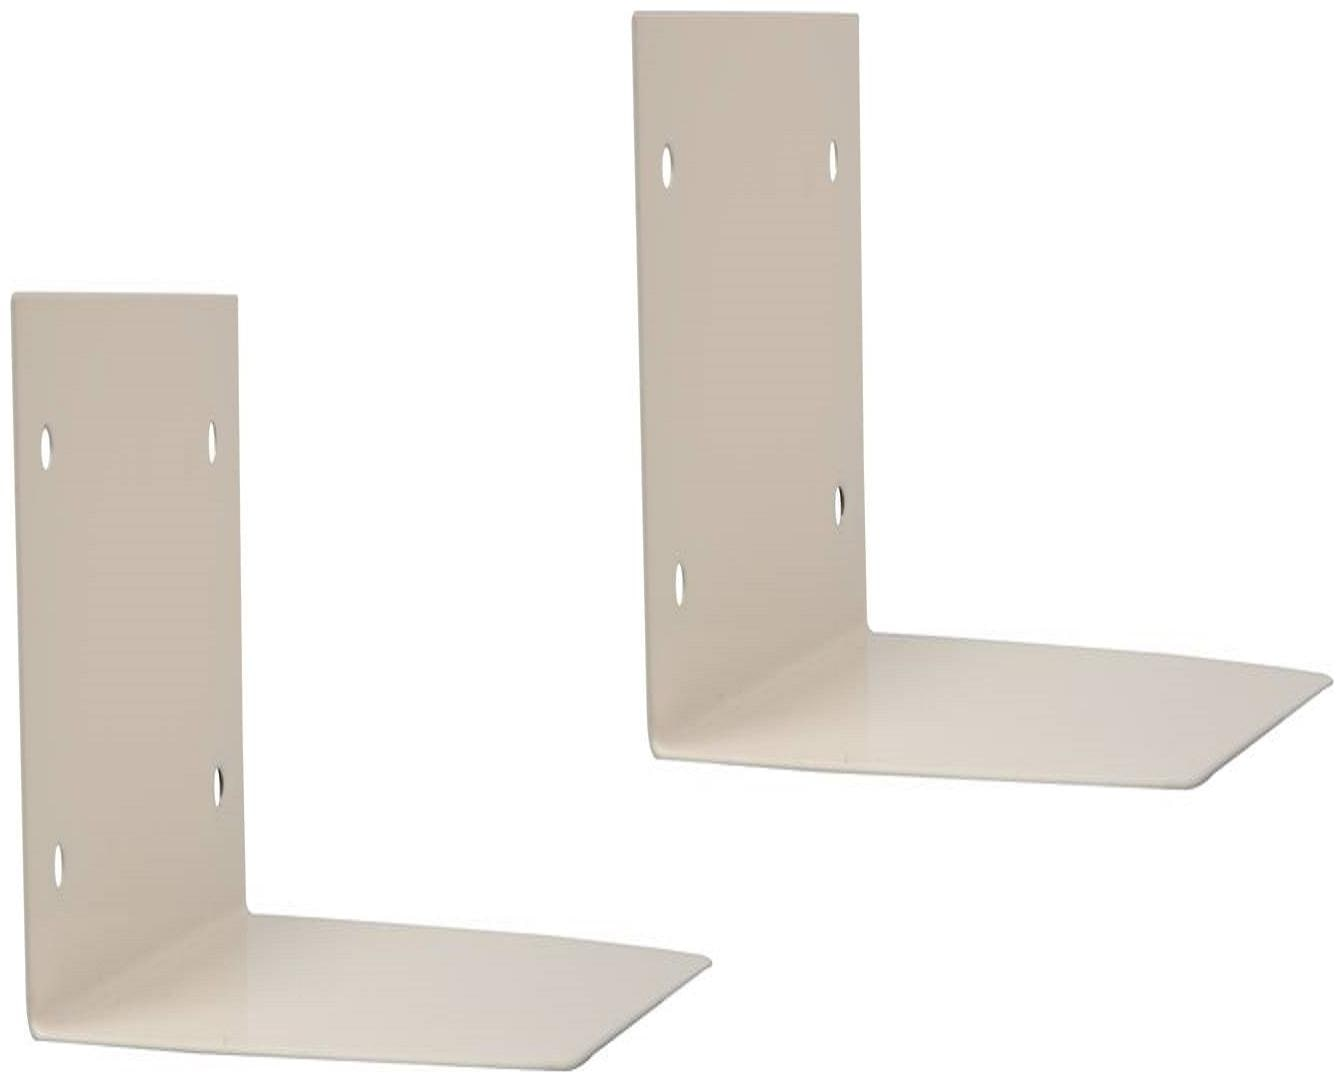 Smart Shelter Super strong Invisible Book Wall Mount shelf / Conceal Book Shelf / Floating Book Shelf  Set of 2 shelves